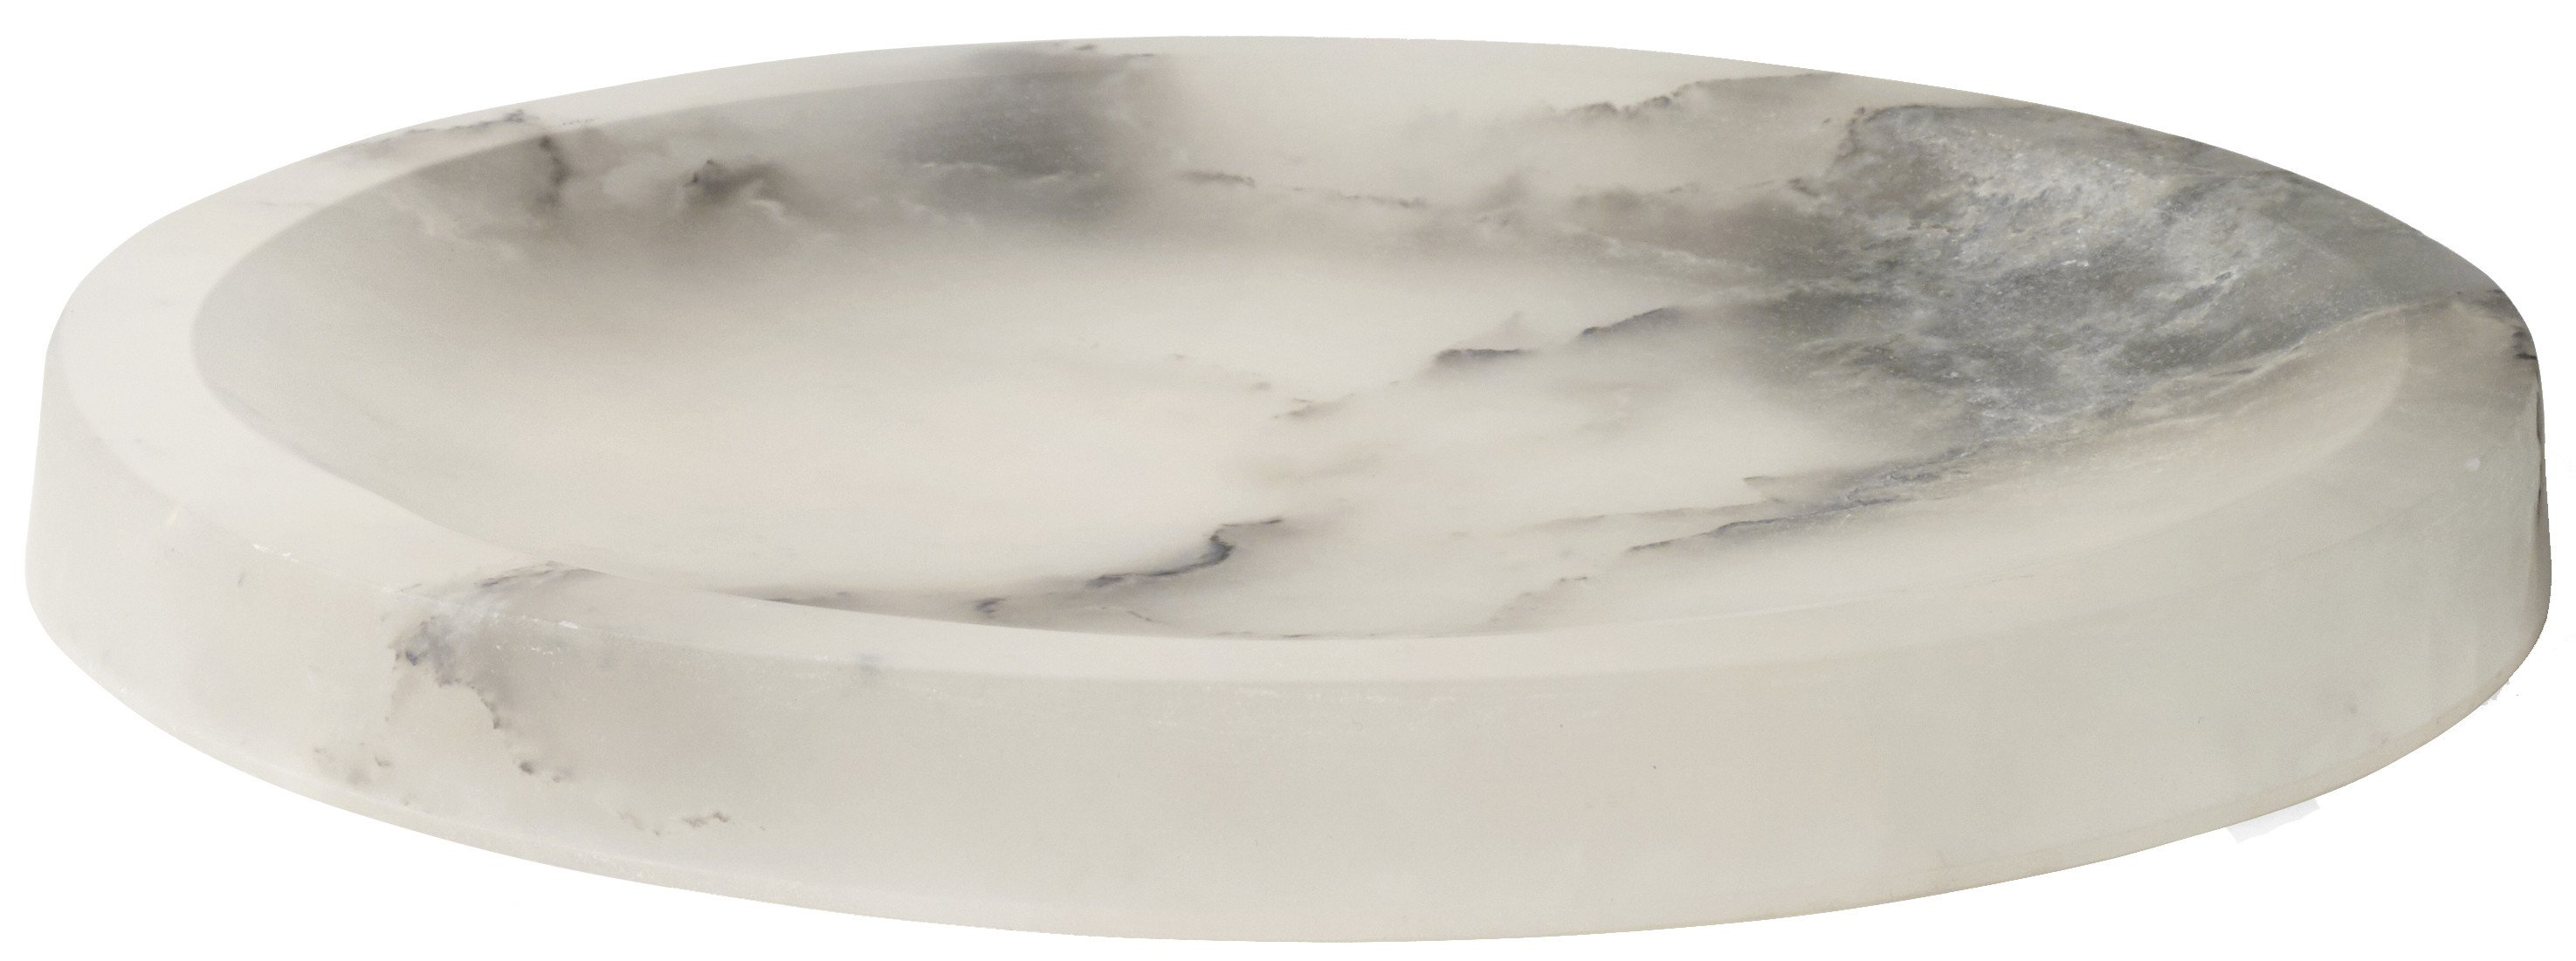 Circular Bowl Alabaster by A. Lixfeld for Menu